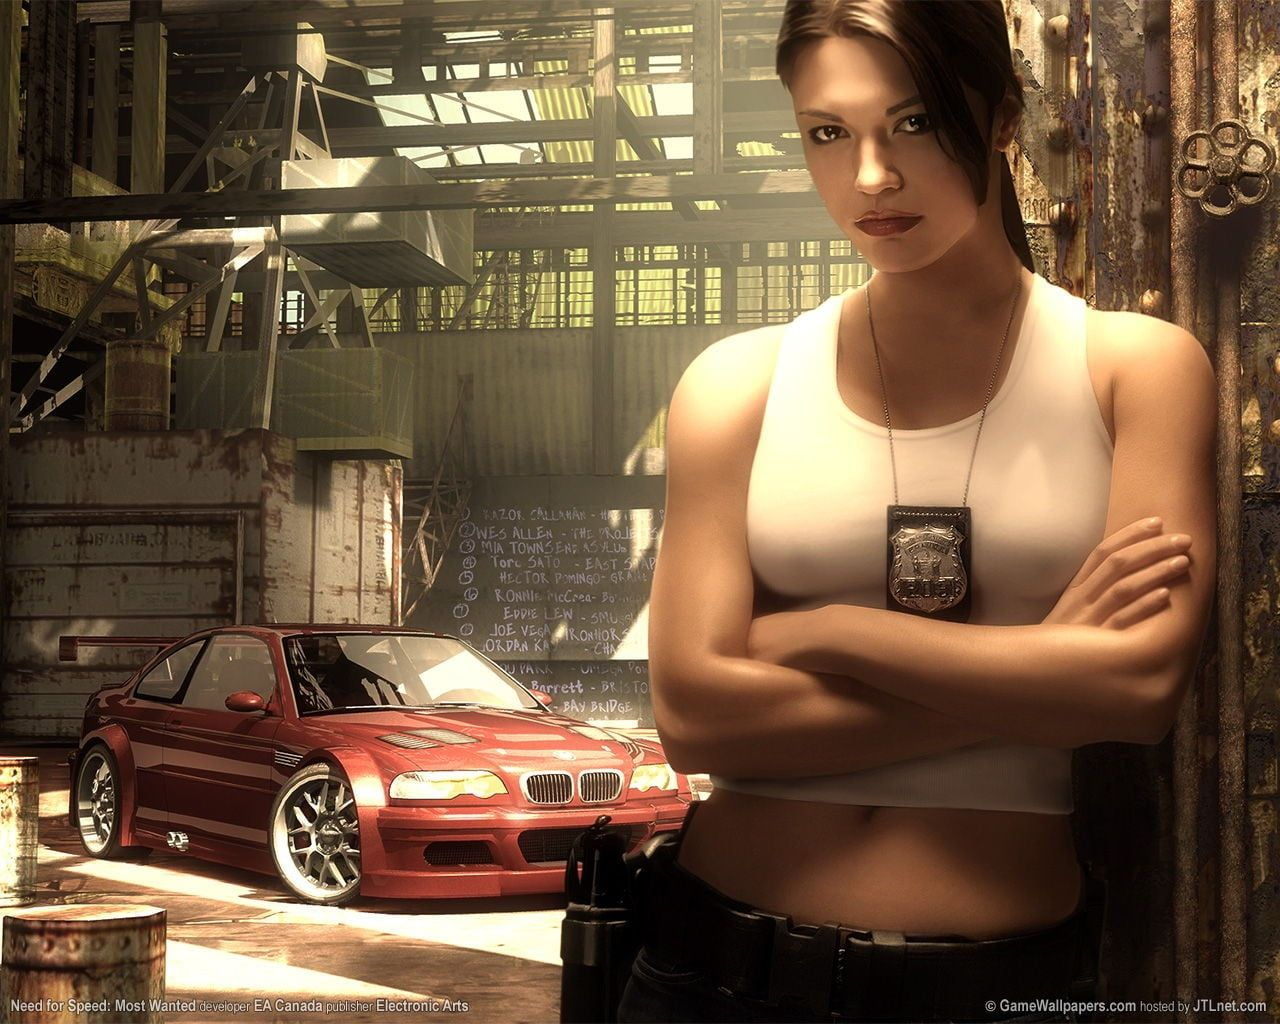 Women S White Crop Top Need For Speed Most Wanted Need For Speed 720p Wallpaper Hdwallpaper Need For Speed Undercover Need For Speed Need For Speed Movie